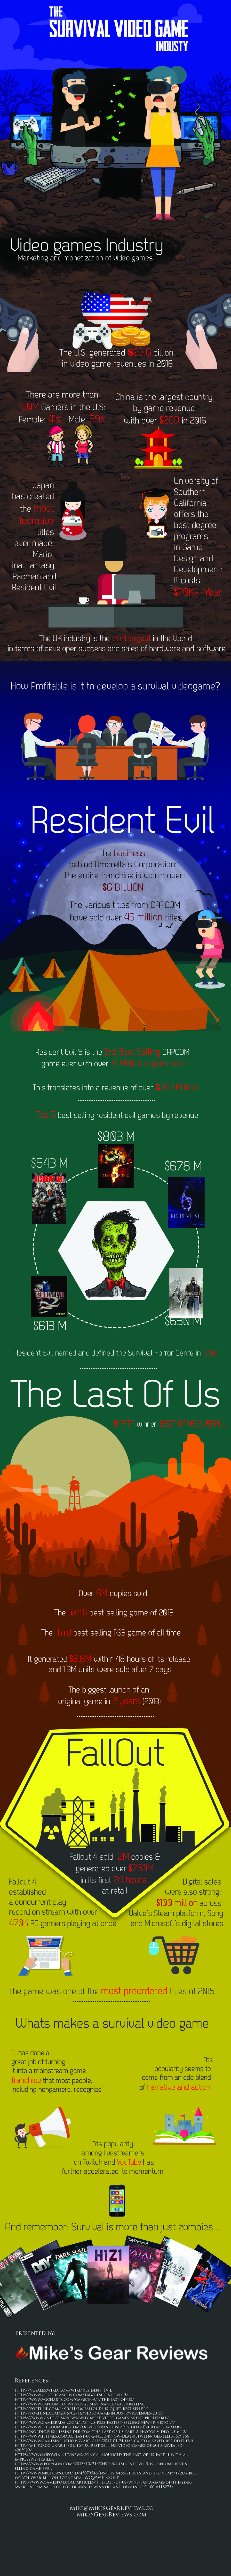 Why Survival Video Games are Best-Sellers! - Infographic